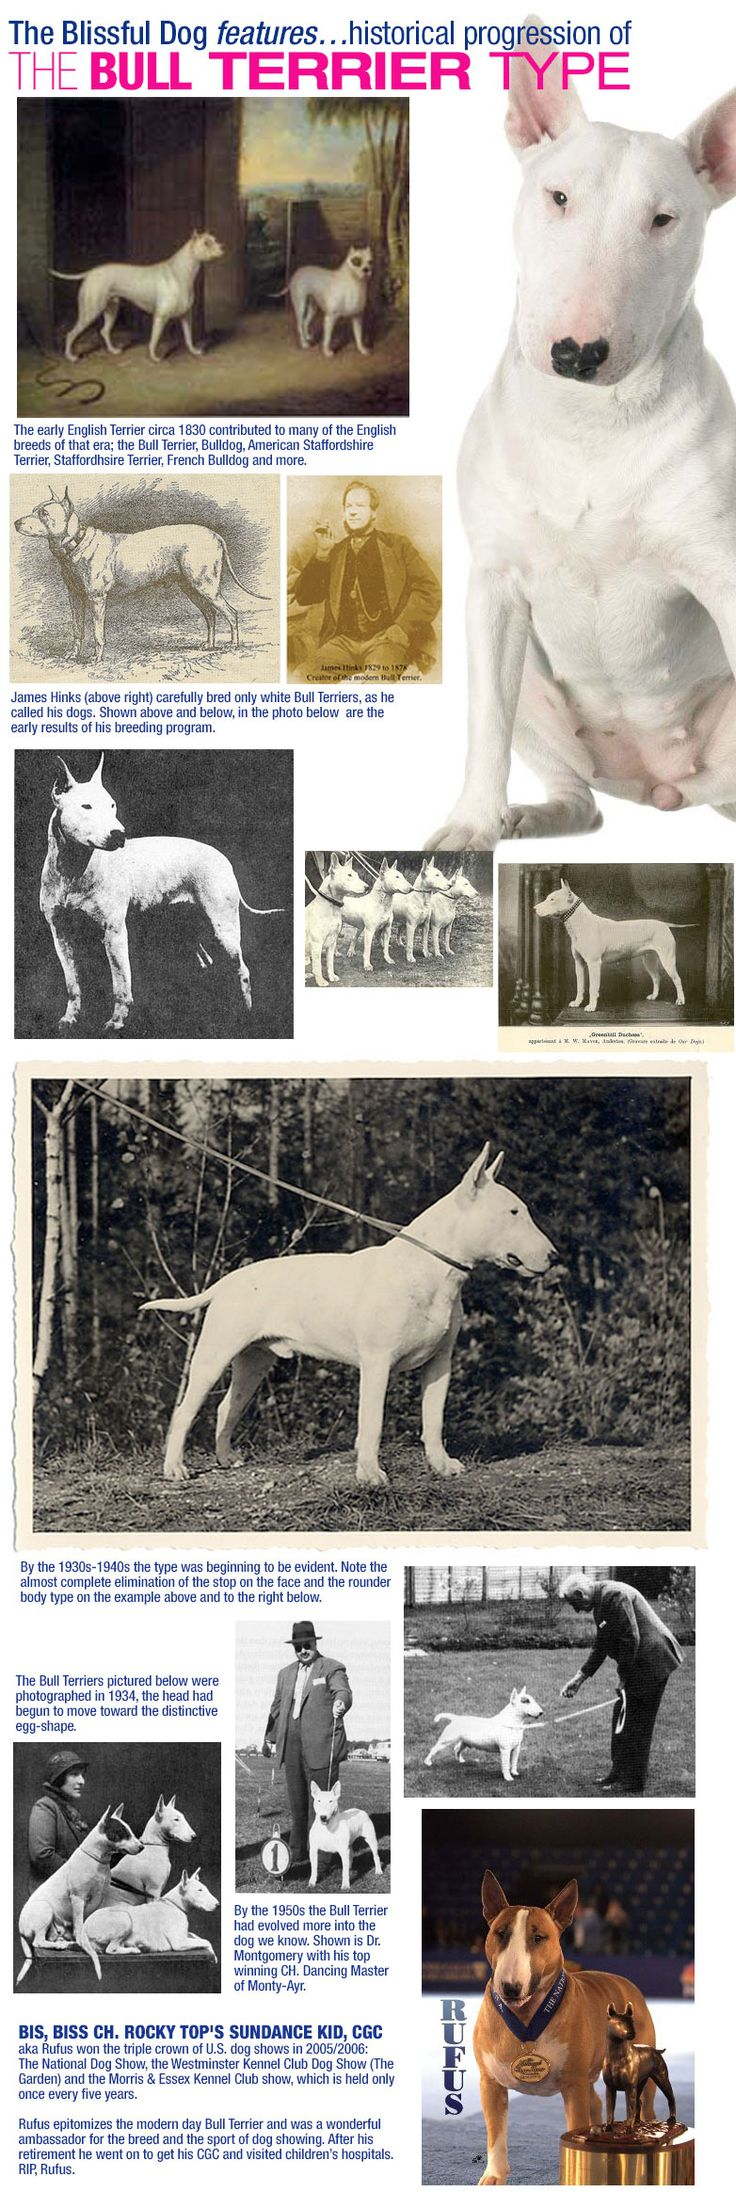 The Bull Terrier has evolved from a leggy white terrier type to the muscular dog with the swagger and distinctive egg-shaped head in the last 100 years.